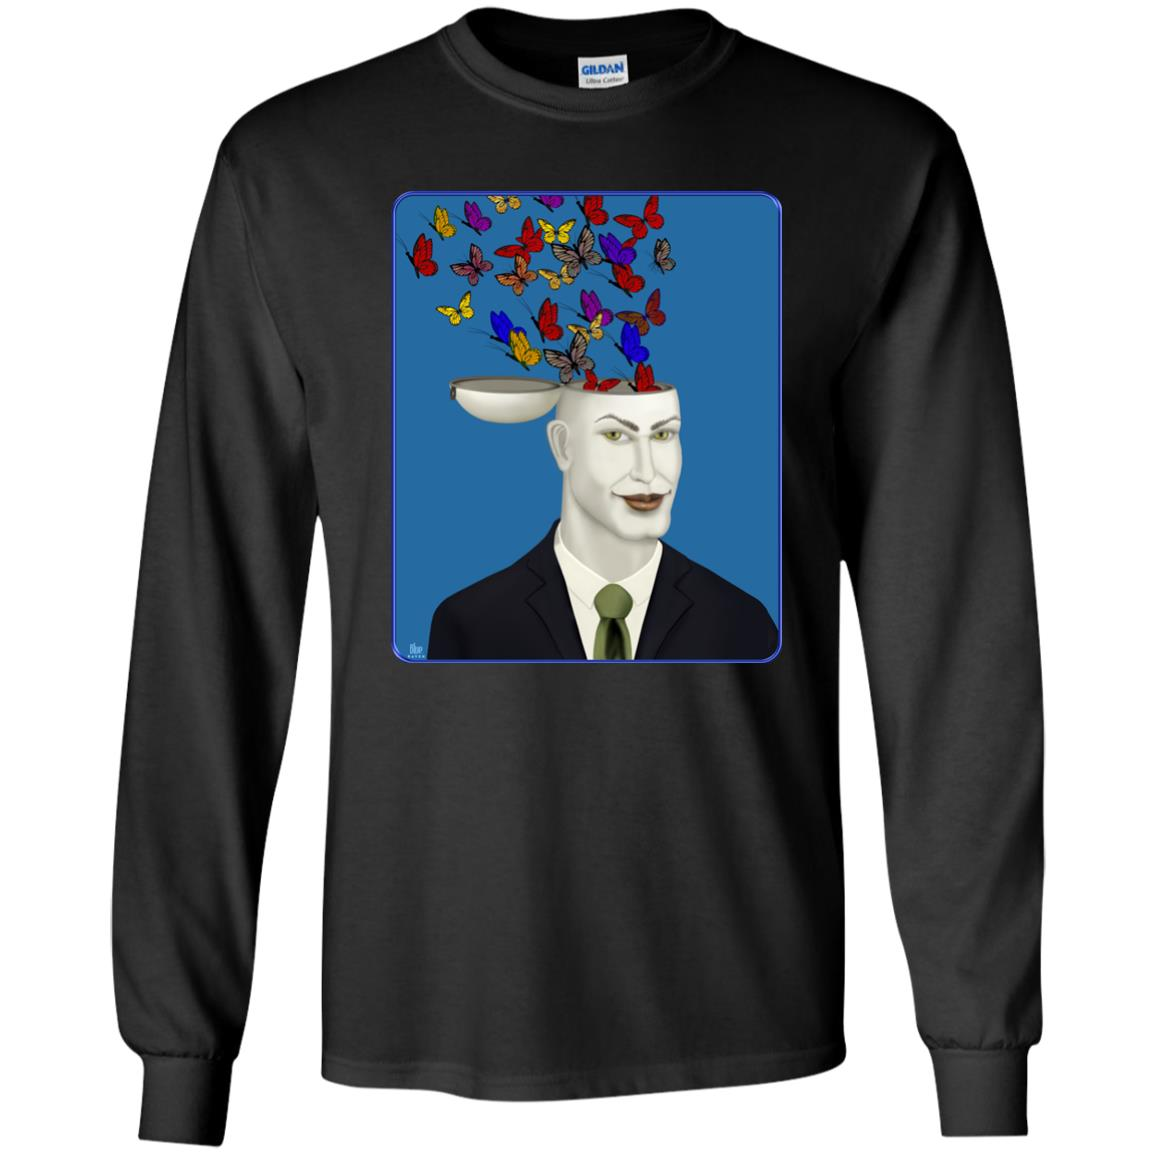 Let Creativity Fly - Youth Long Sleeve T-Shirt